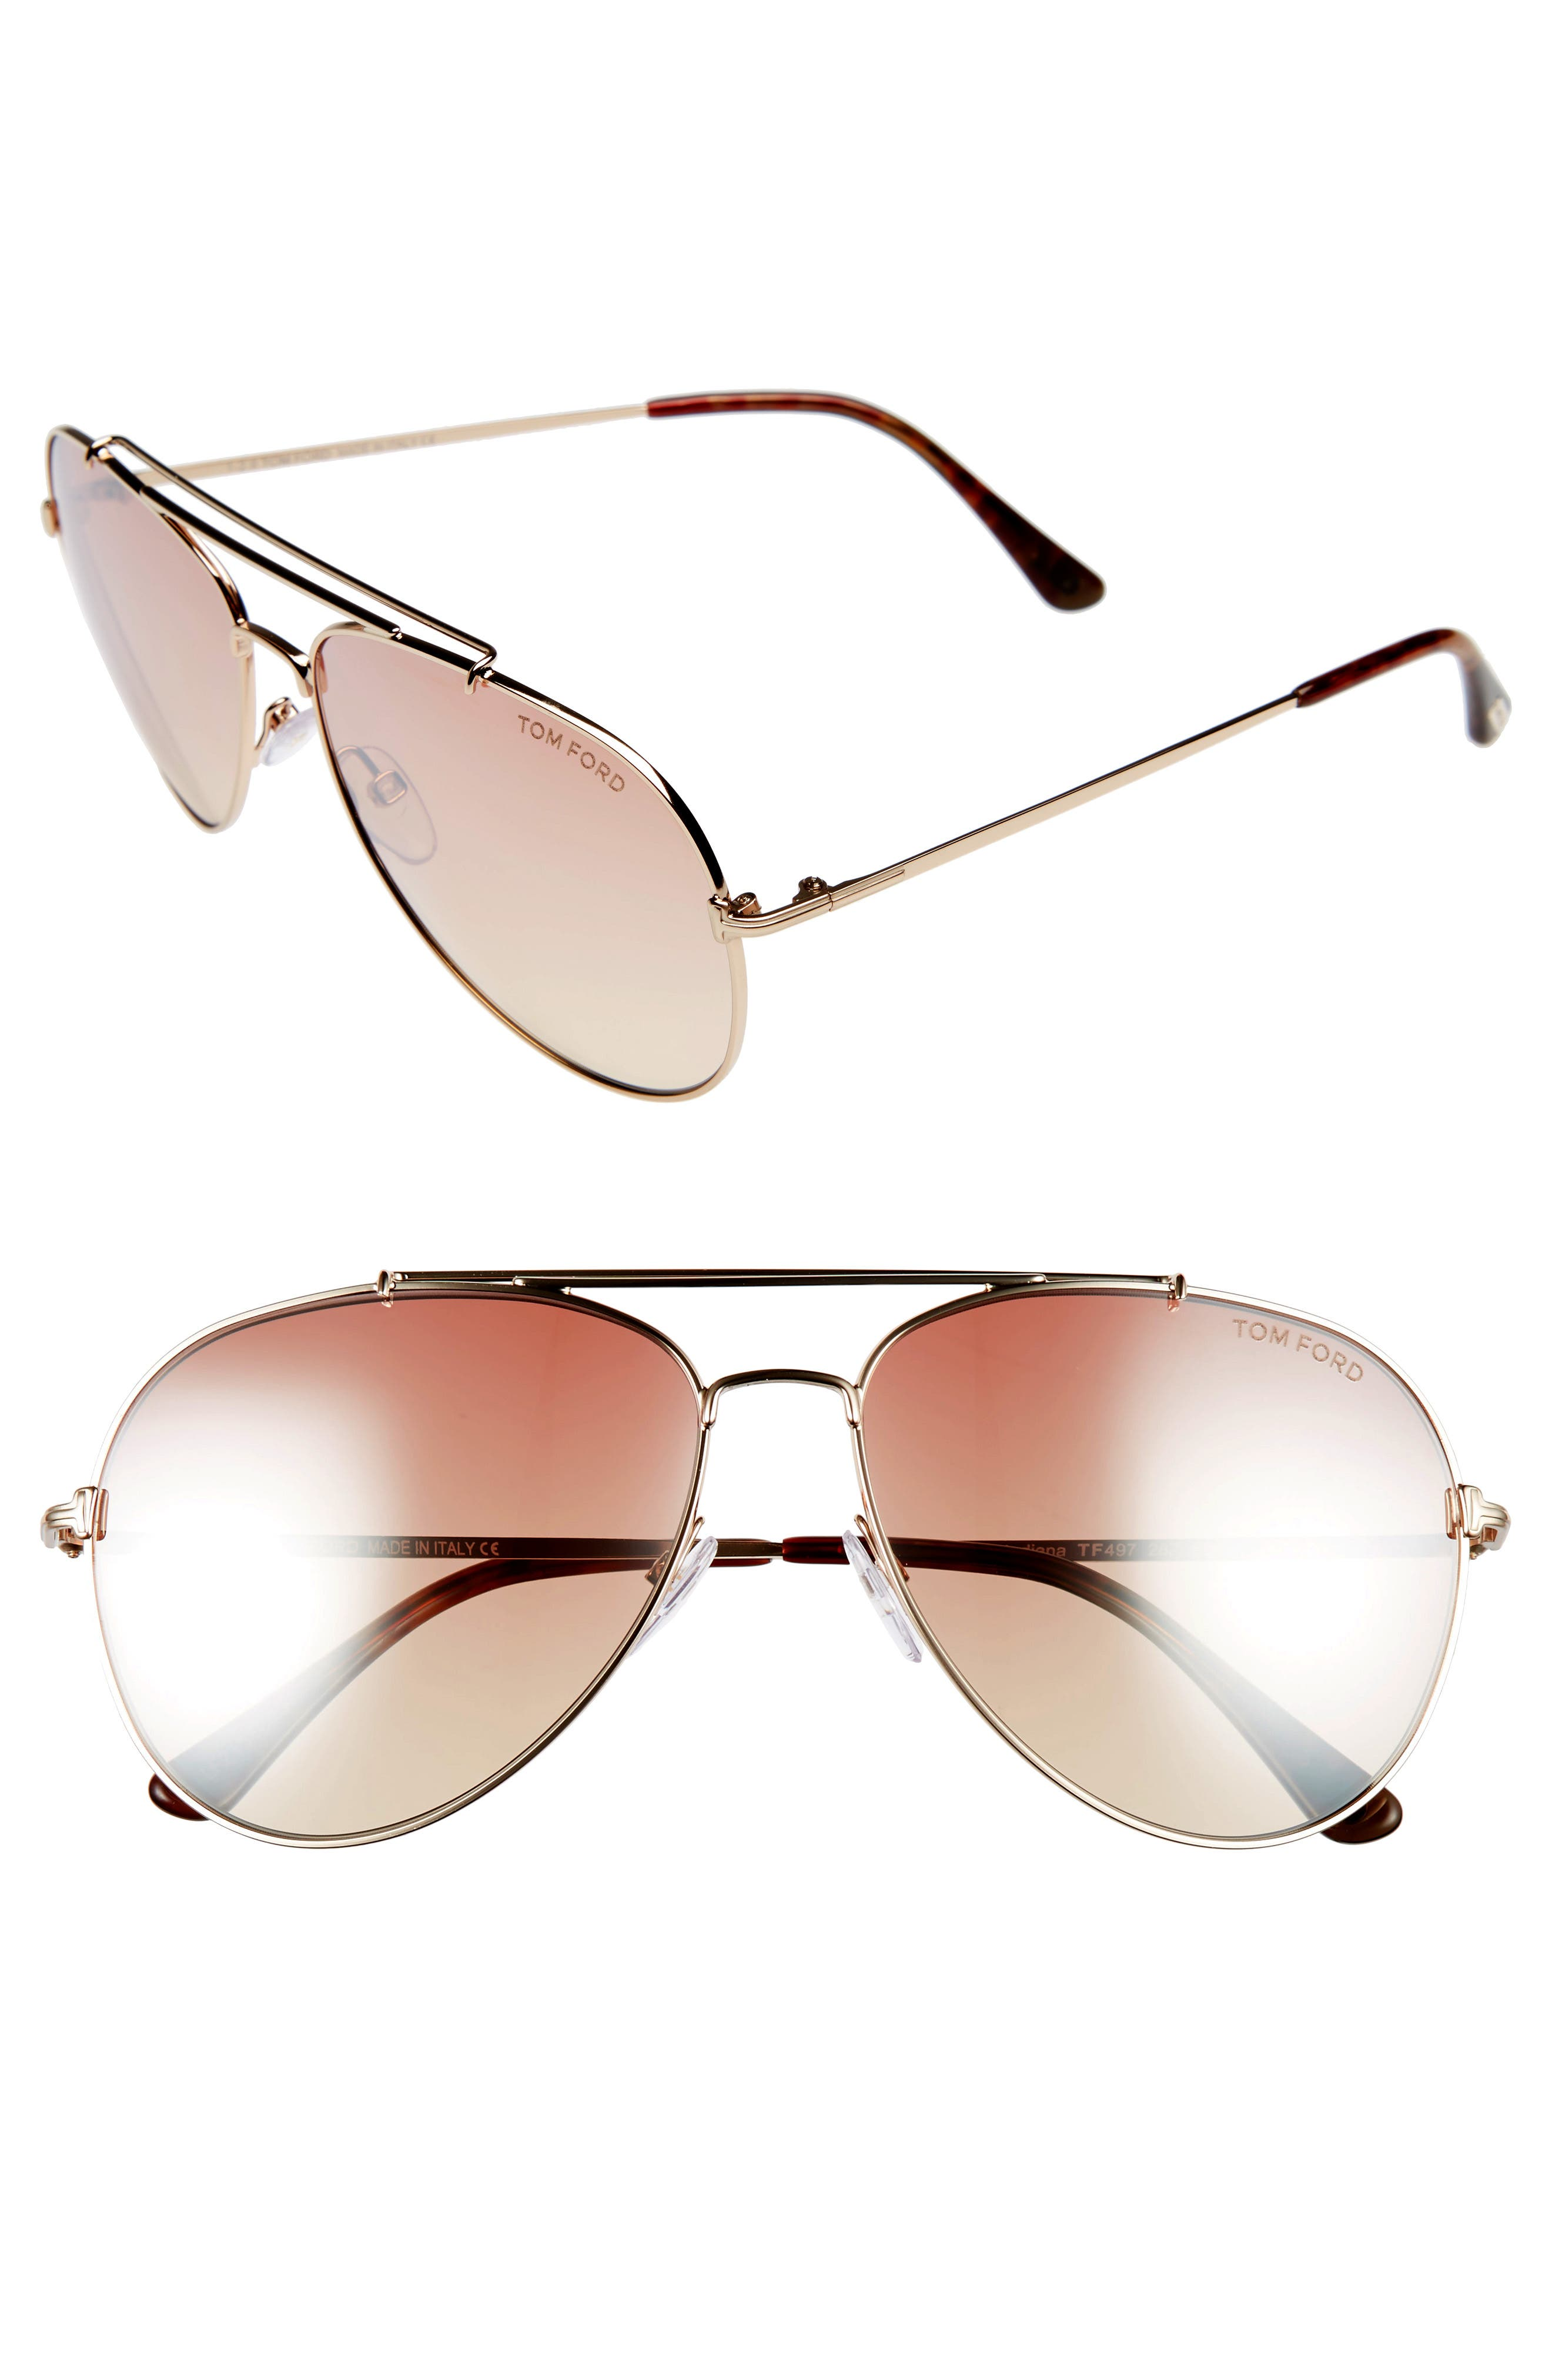 Main Image - Tom Ford Indiana 60mm Aviator Sunglasses